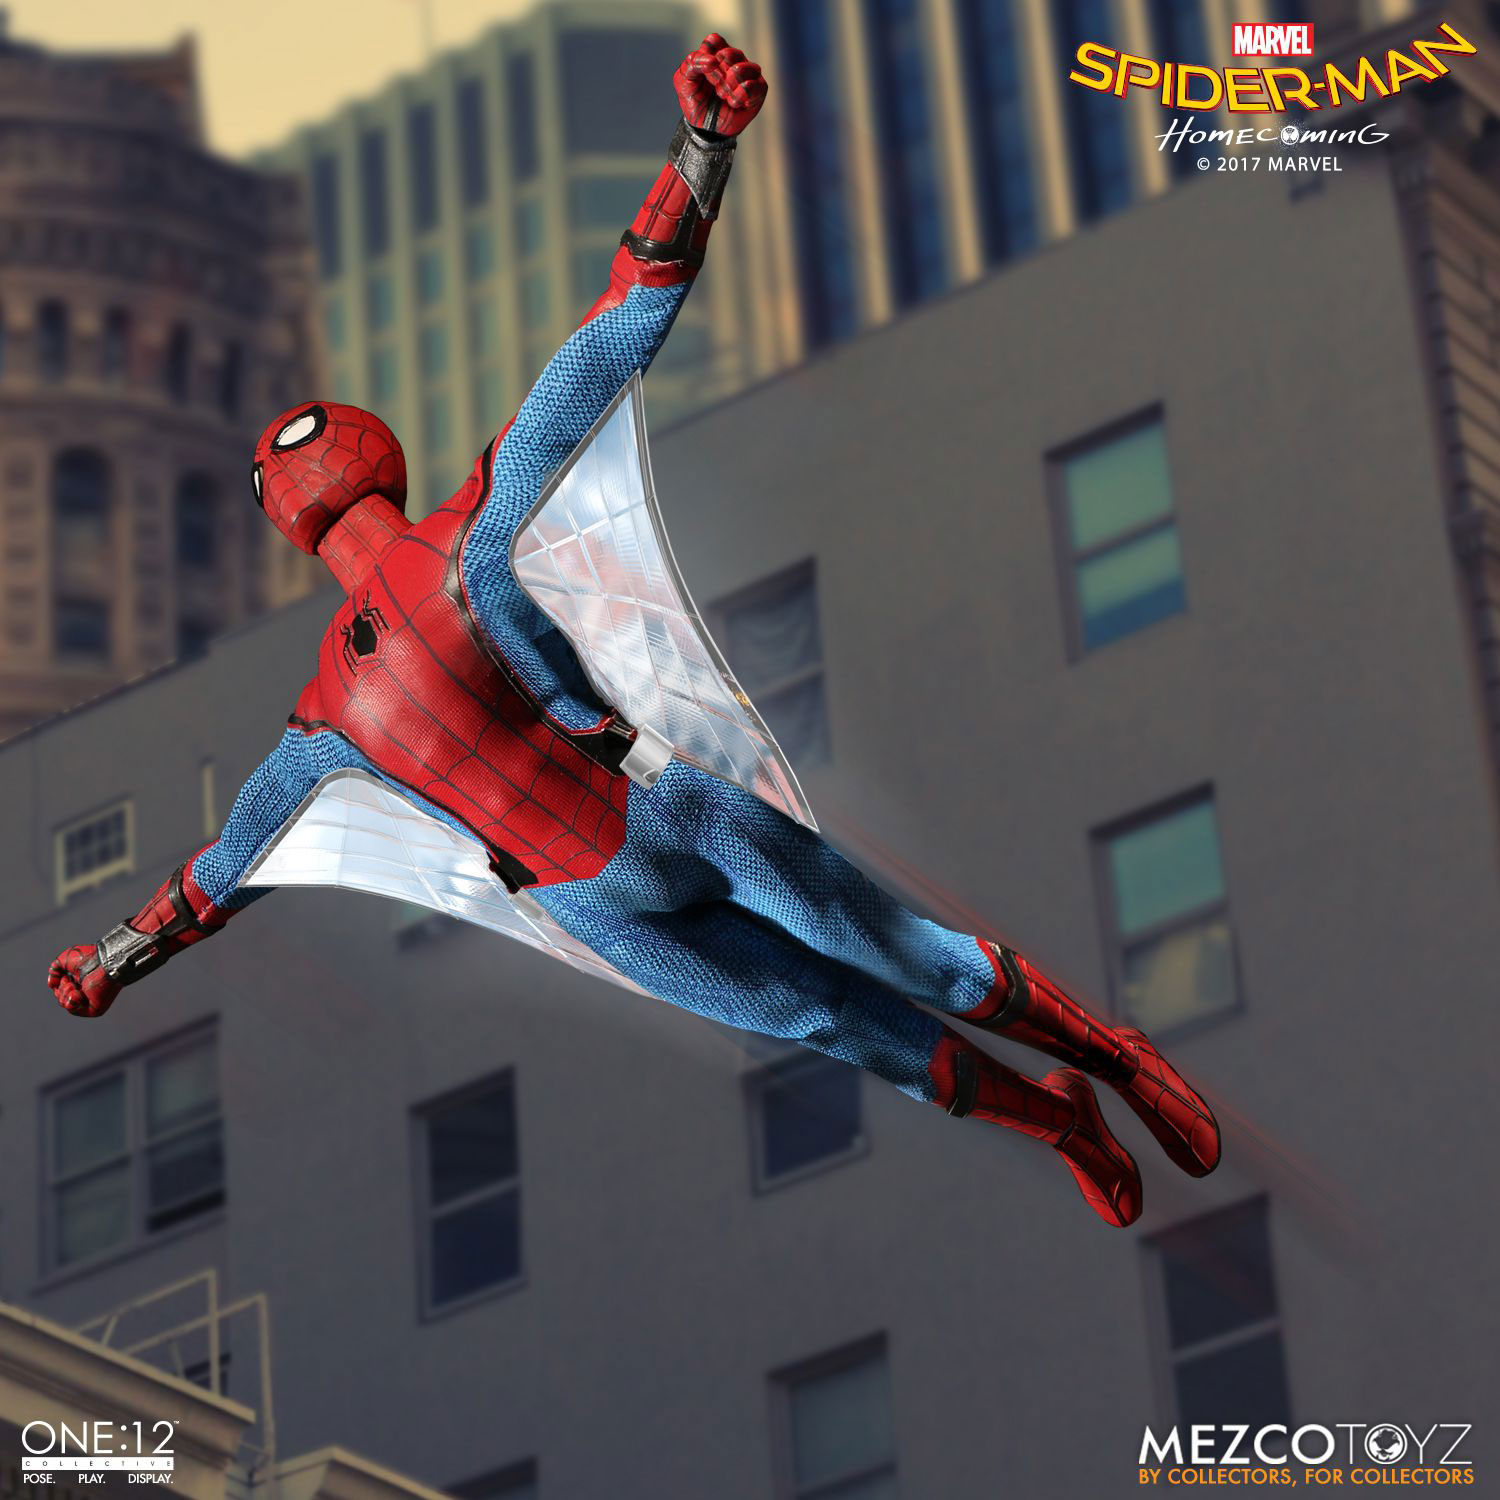 spiderman-homecoming-mezco-one-12-collective-action-figure-6